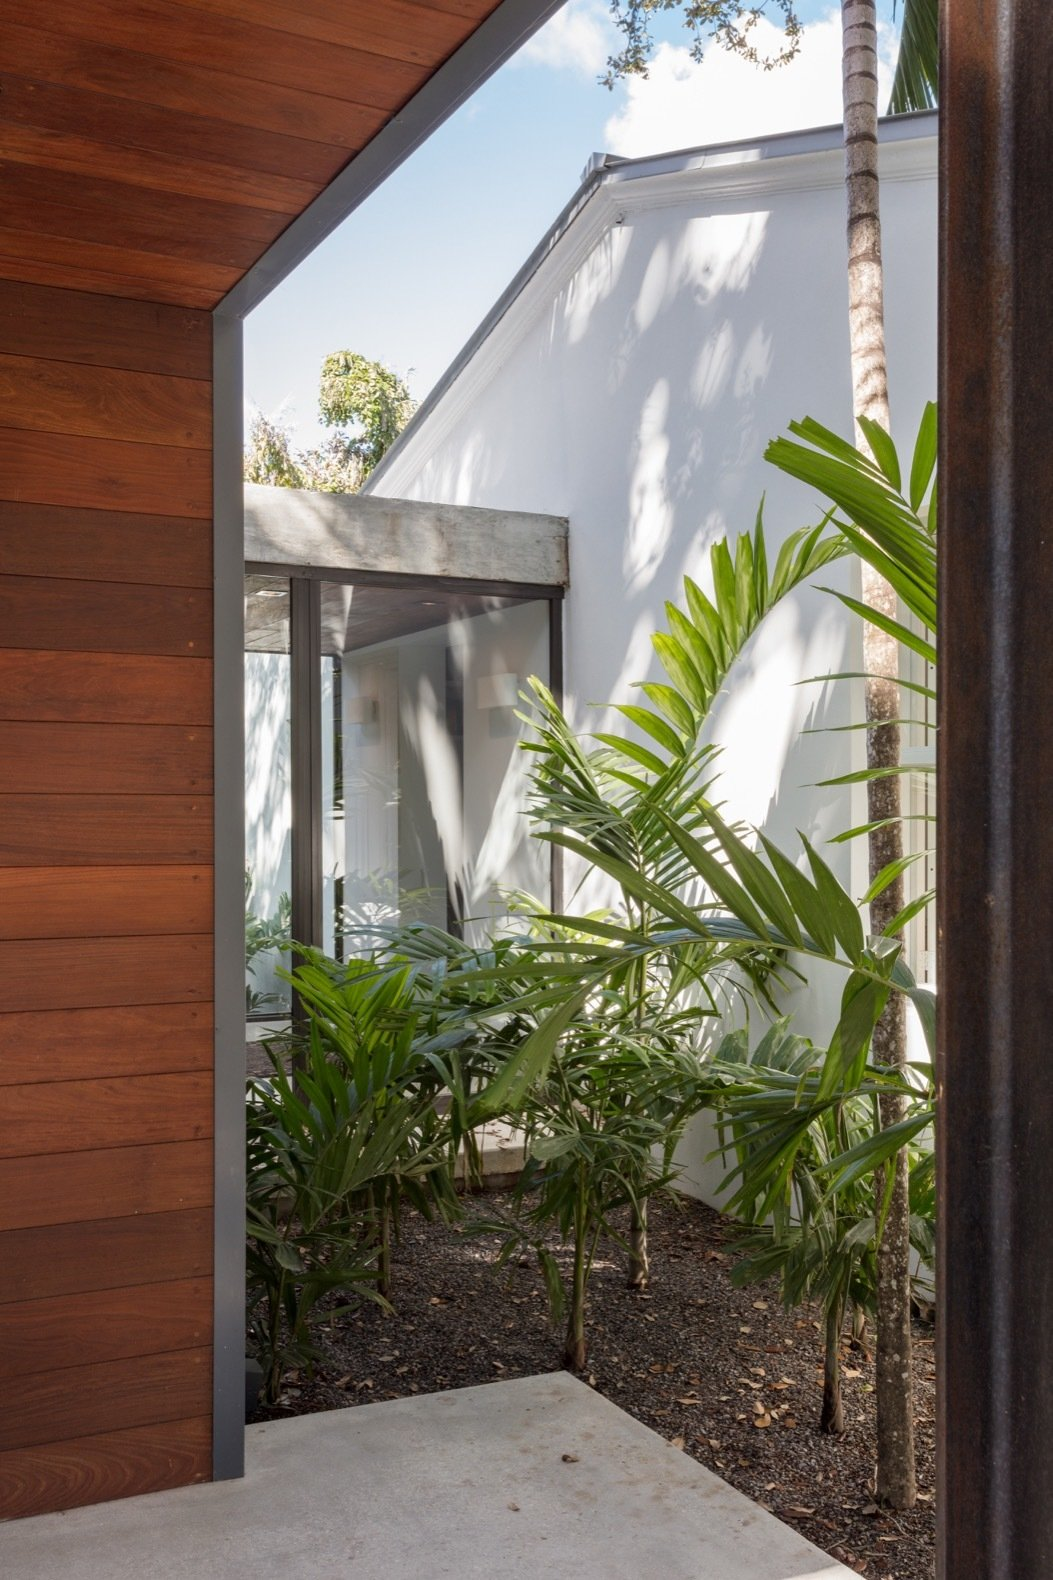 Outdoor, Side Yard, Trees, Grass, Small Patio, Porch, Deck, and Concrete Patio, Porch, Deck A glazed vestibule connects the new addition with the renovated bungalow.   Photo 11 of 21 in A Minimalist Bungalow in Miami Welcomes a Sleek New Addition